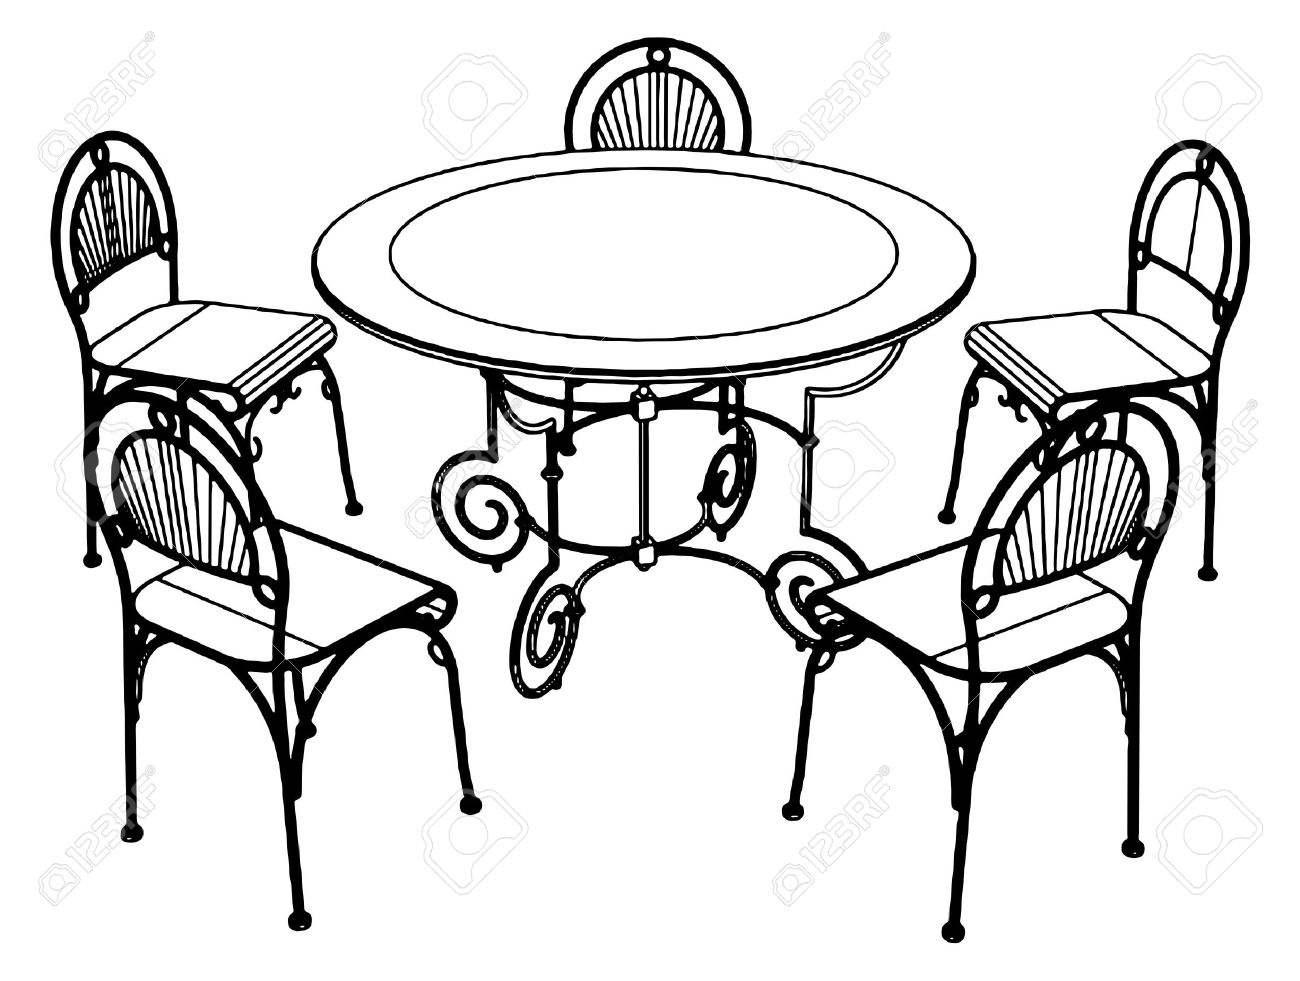 Clipart table and chairs at a restarante png transparent library Furniture Clipart Black And White | Free download best Furniture ... png transparent library